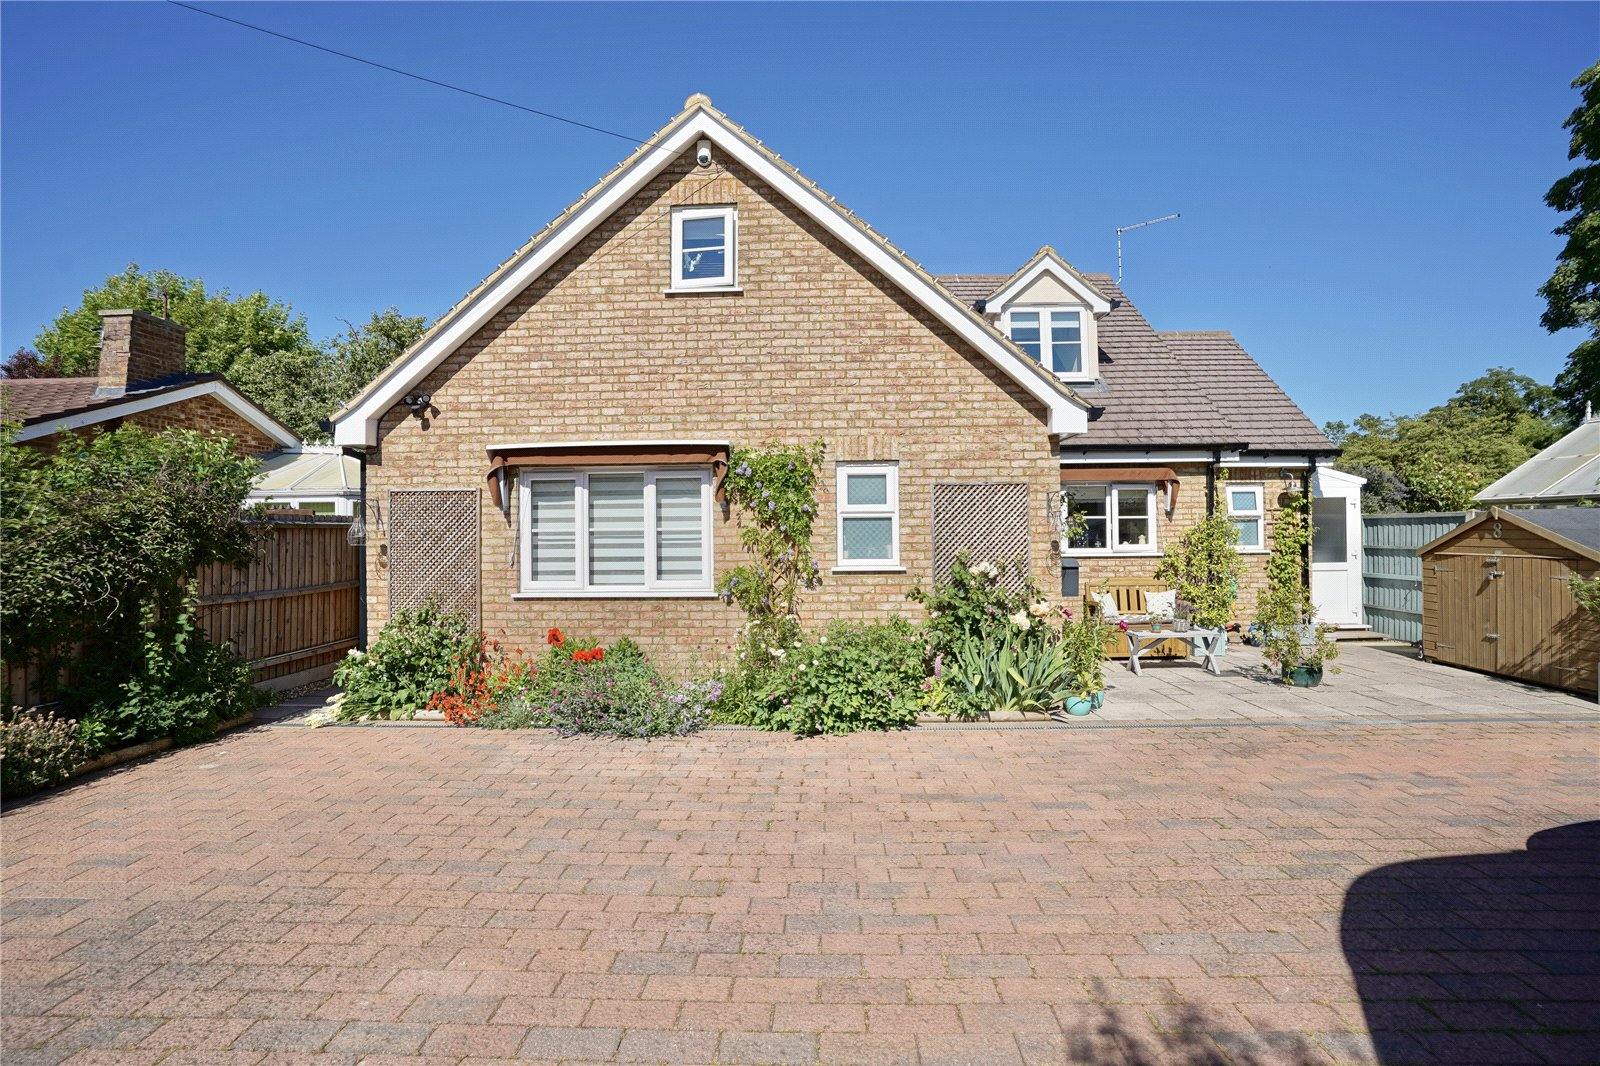 4 bed house for sale in Mill Lane, Little Paxton 0